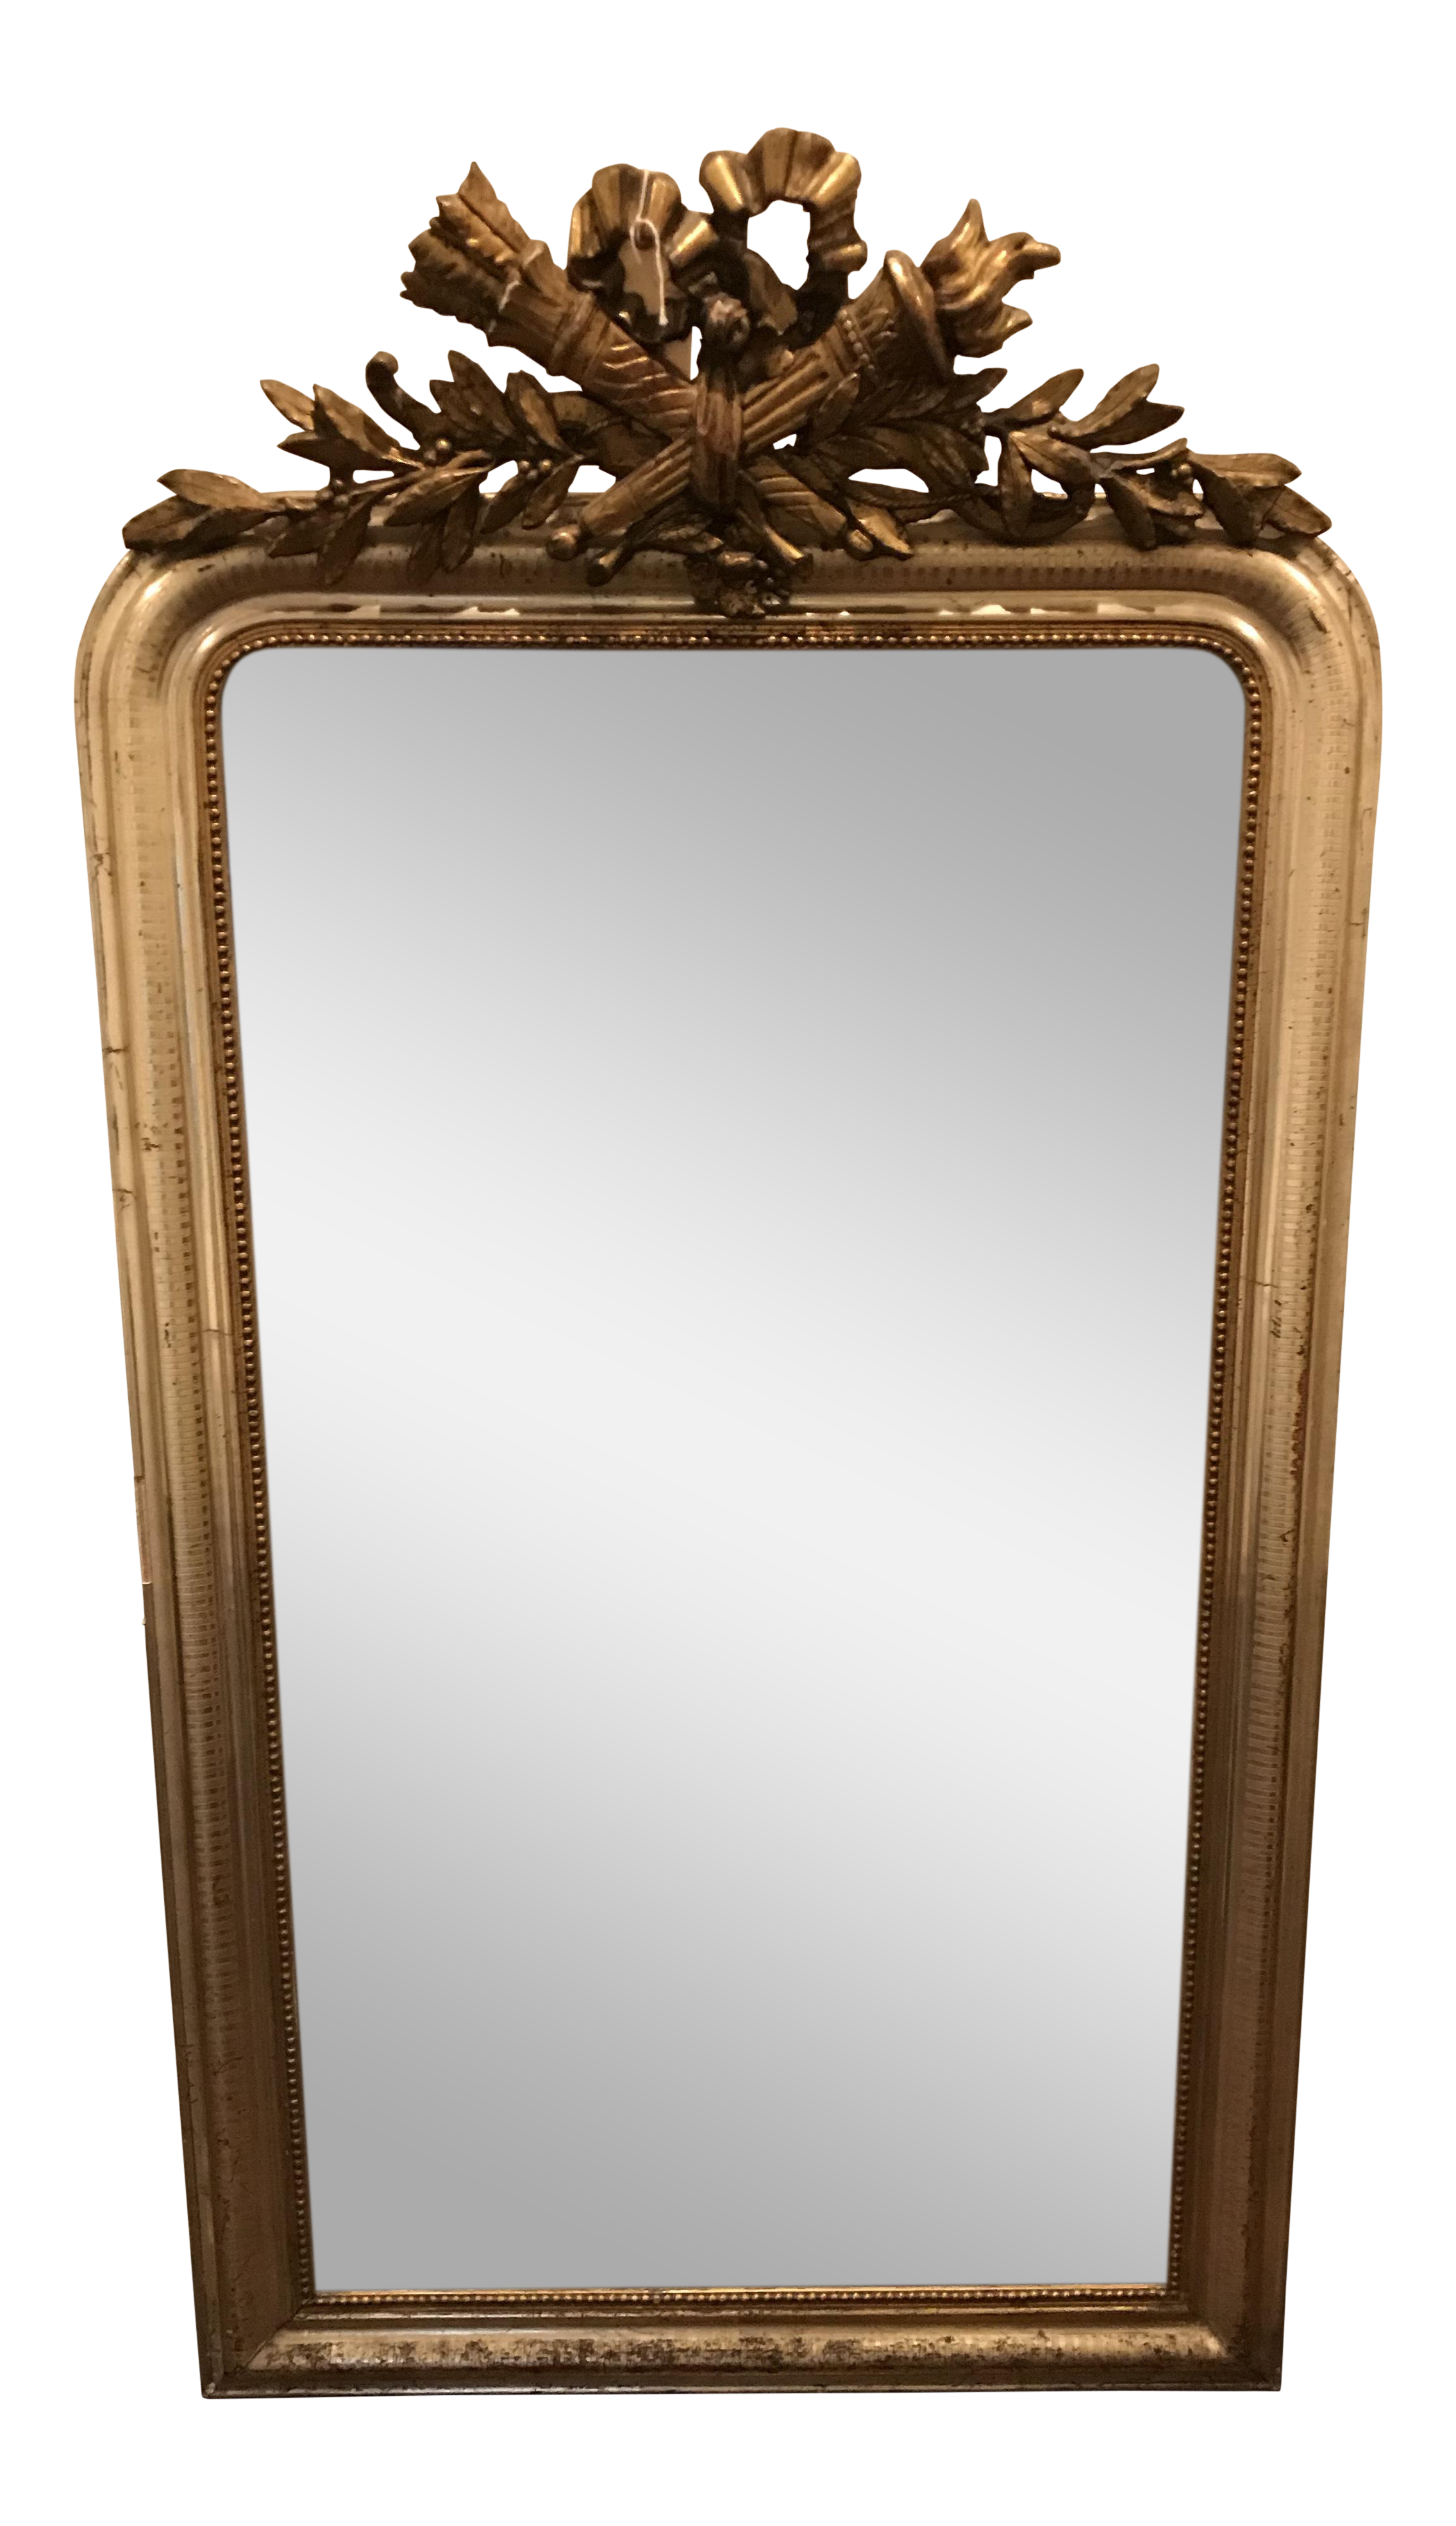 18th Century Gilded Silver Gold Mirror On Chairish Com Mirror Mirror Wall Gold Mirror